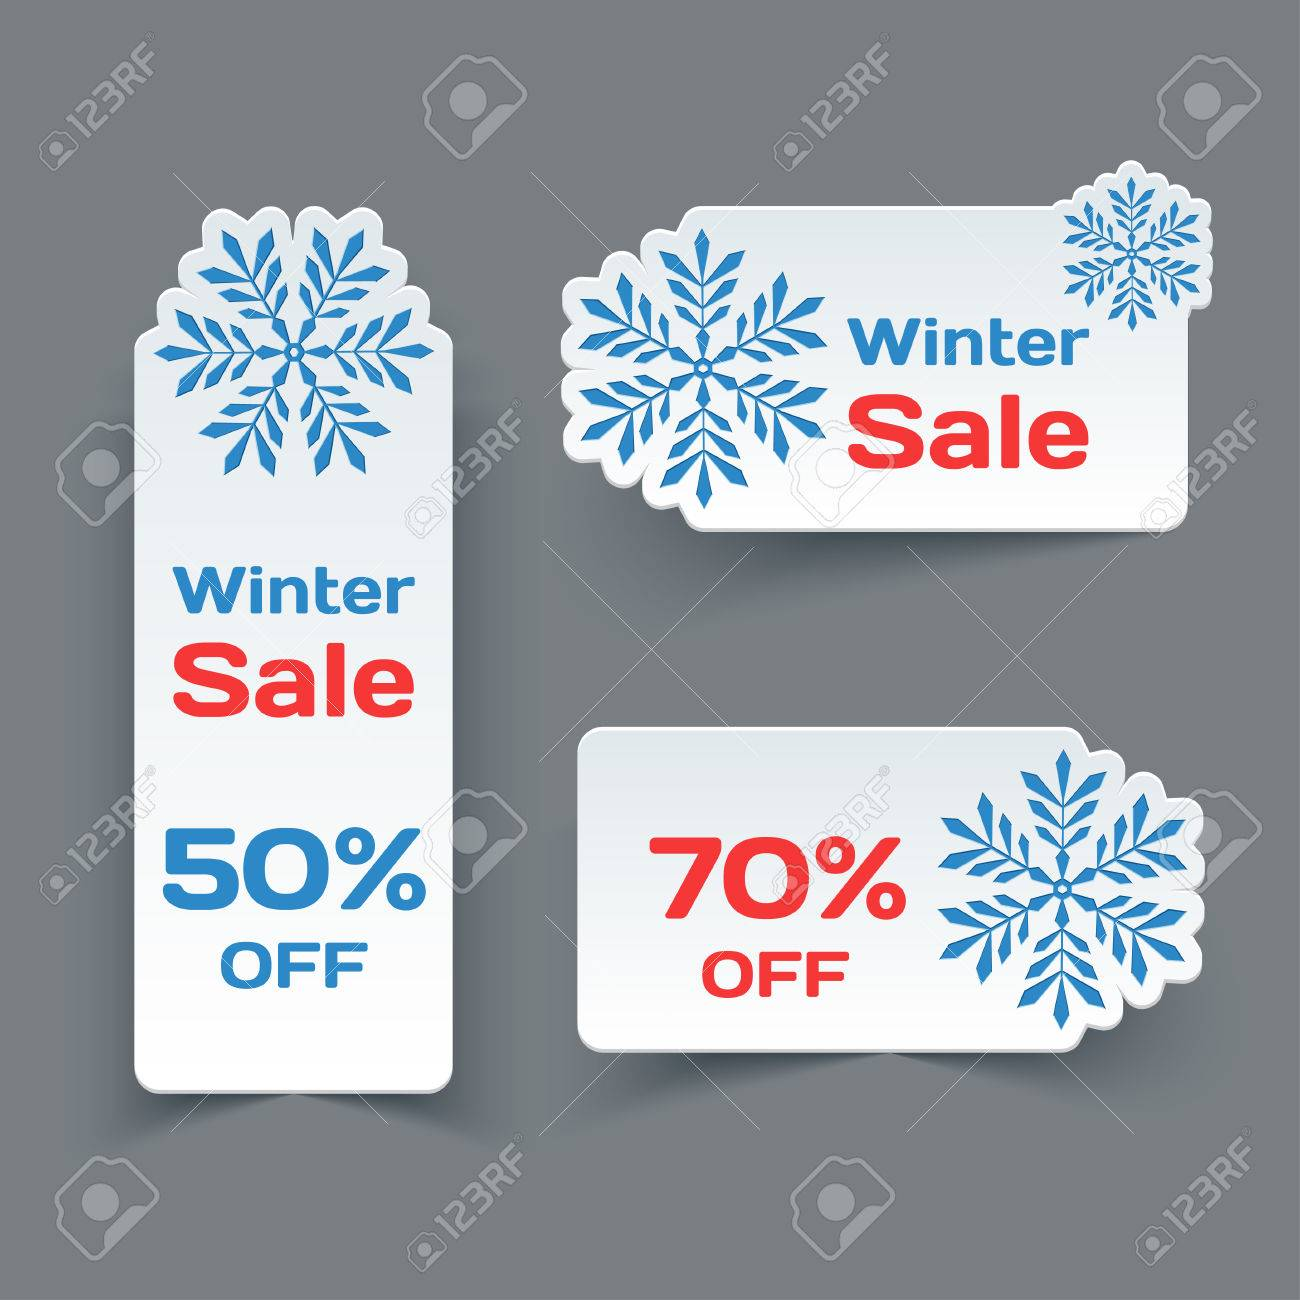 Winter Sale Banners E Commerce Banners